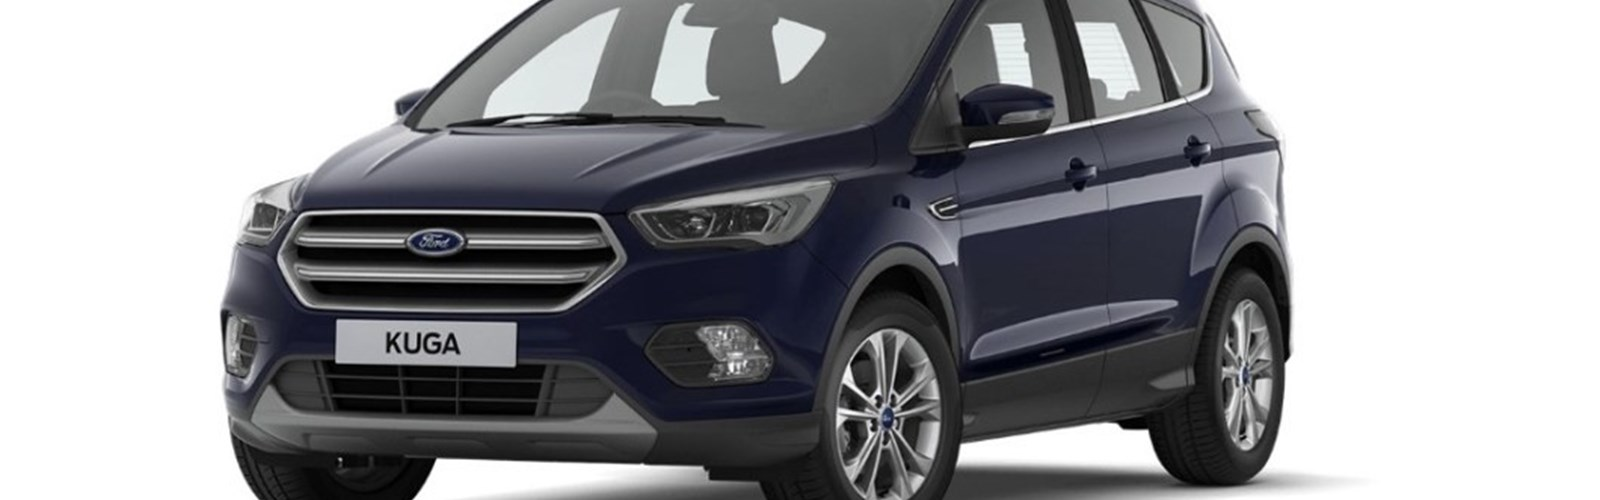 Ford Kuga Or Similar Car Rental On The Faroe Islands Rent A Car Faroe Islands